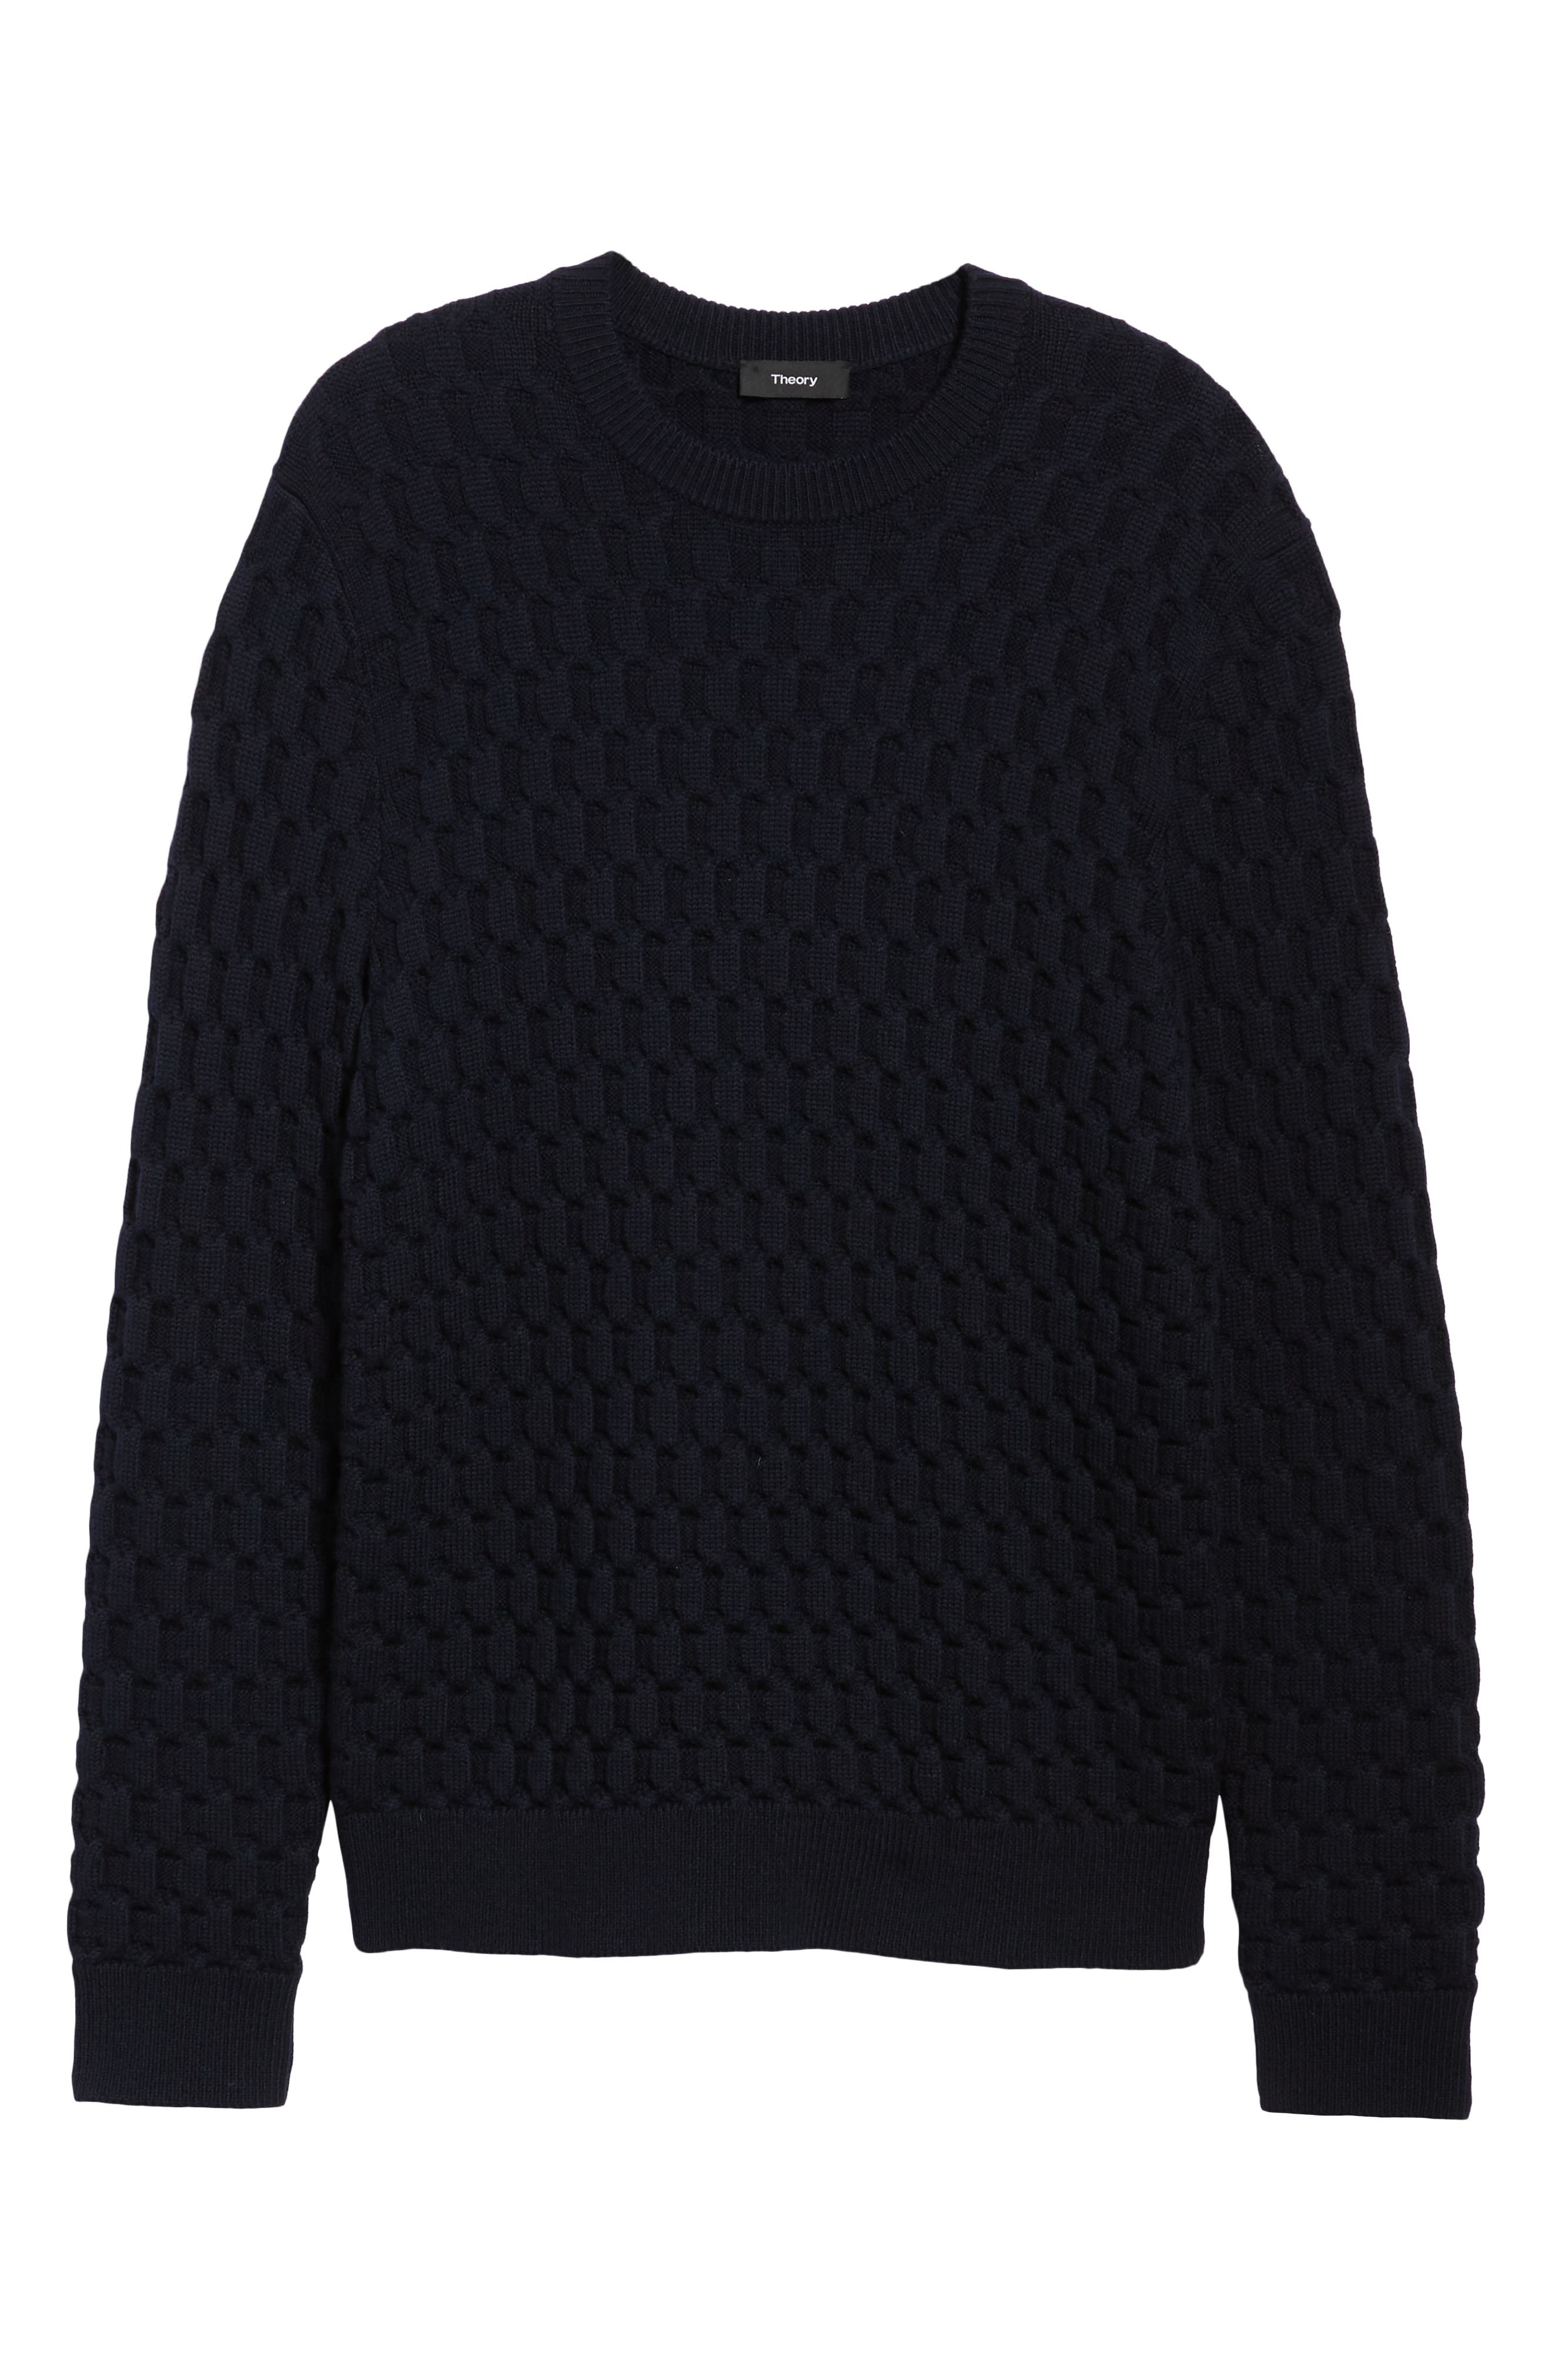 Marcos Honeycomb Merino Wool Sweater,                             Alternate thumbnail 3, color,                             ECLIPSE